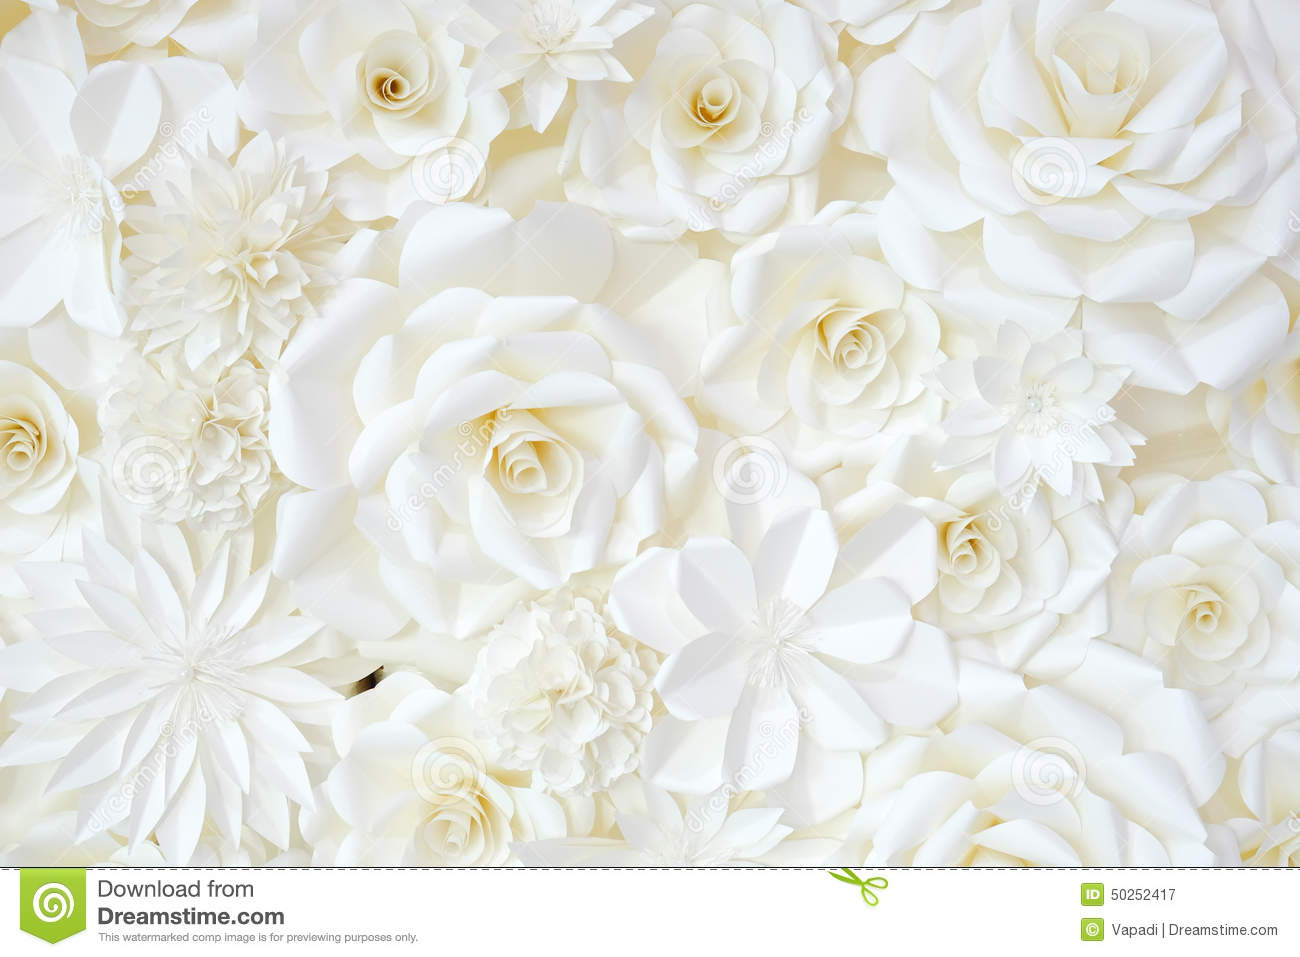 Background of paper folding flower stock image image of paper background of paper folding flower in white cream color mightylinksfo